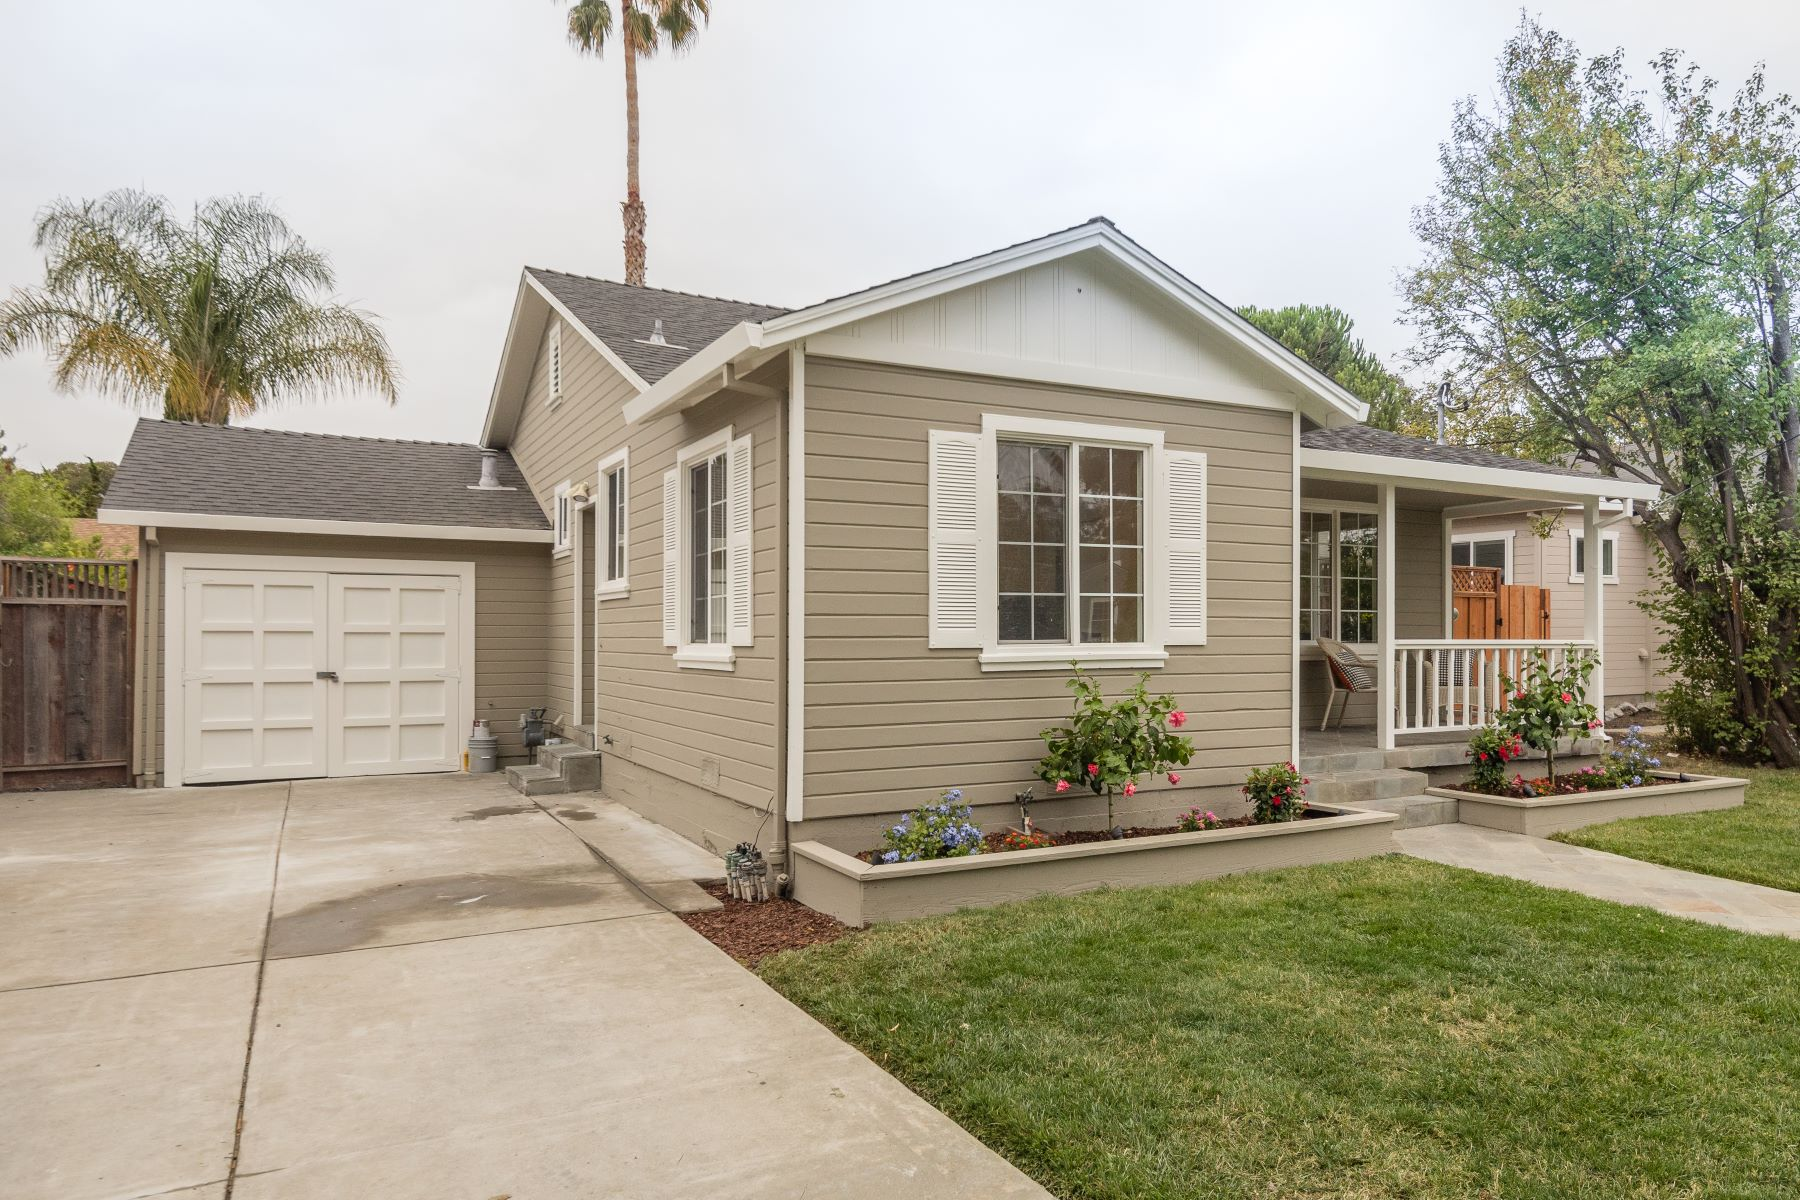 Single Family Home for Active at Darling Home on Sunny Madison Avenue 1143 Madison Avenue Redwood City, California 94061 United States